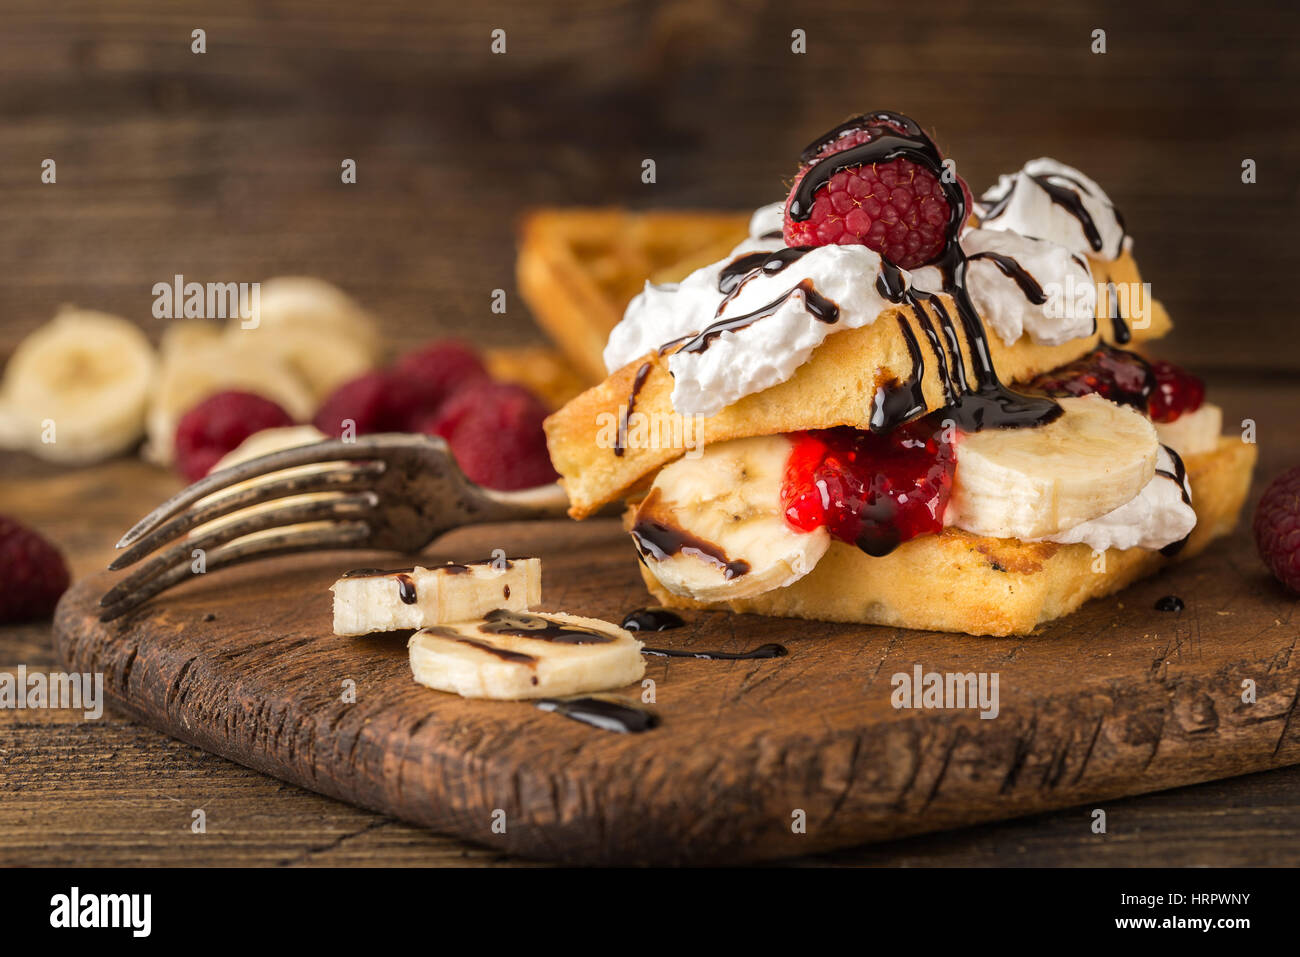 Belgian waffles with raspberries, bananas and double cream on rustic table. - Stock Image